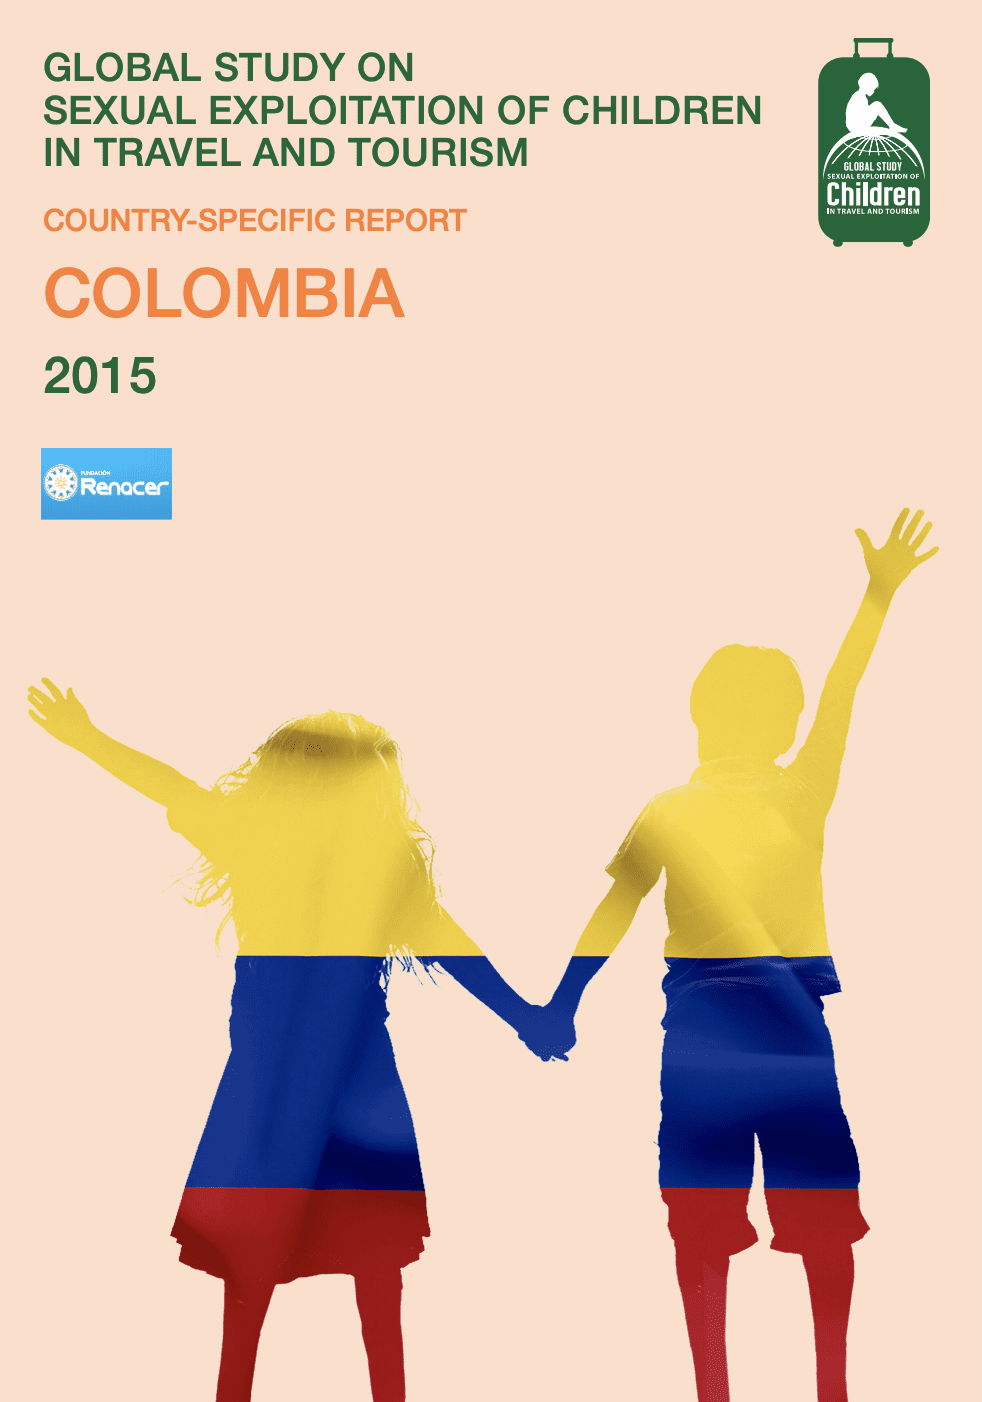 Global Study on Sexual Exploitation of Children in Travel and Tourism – Colombia